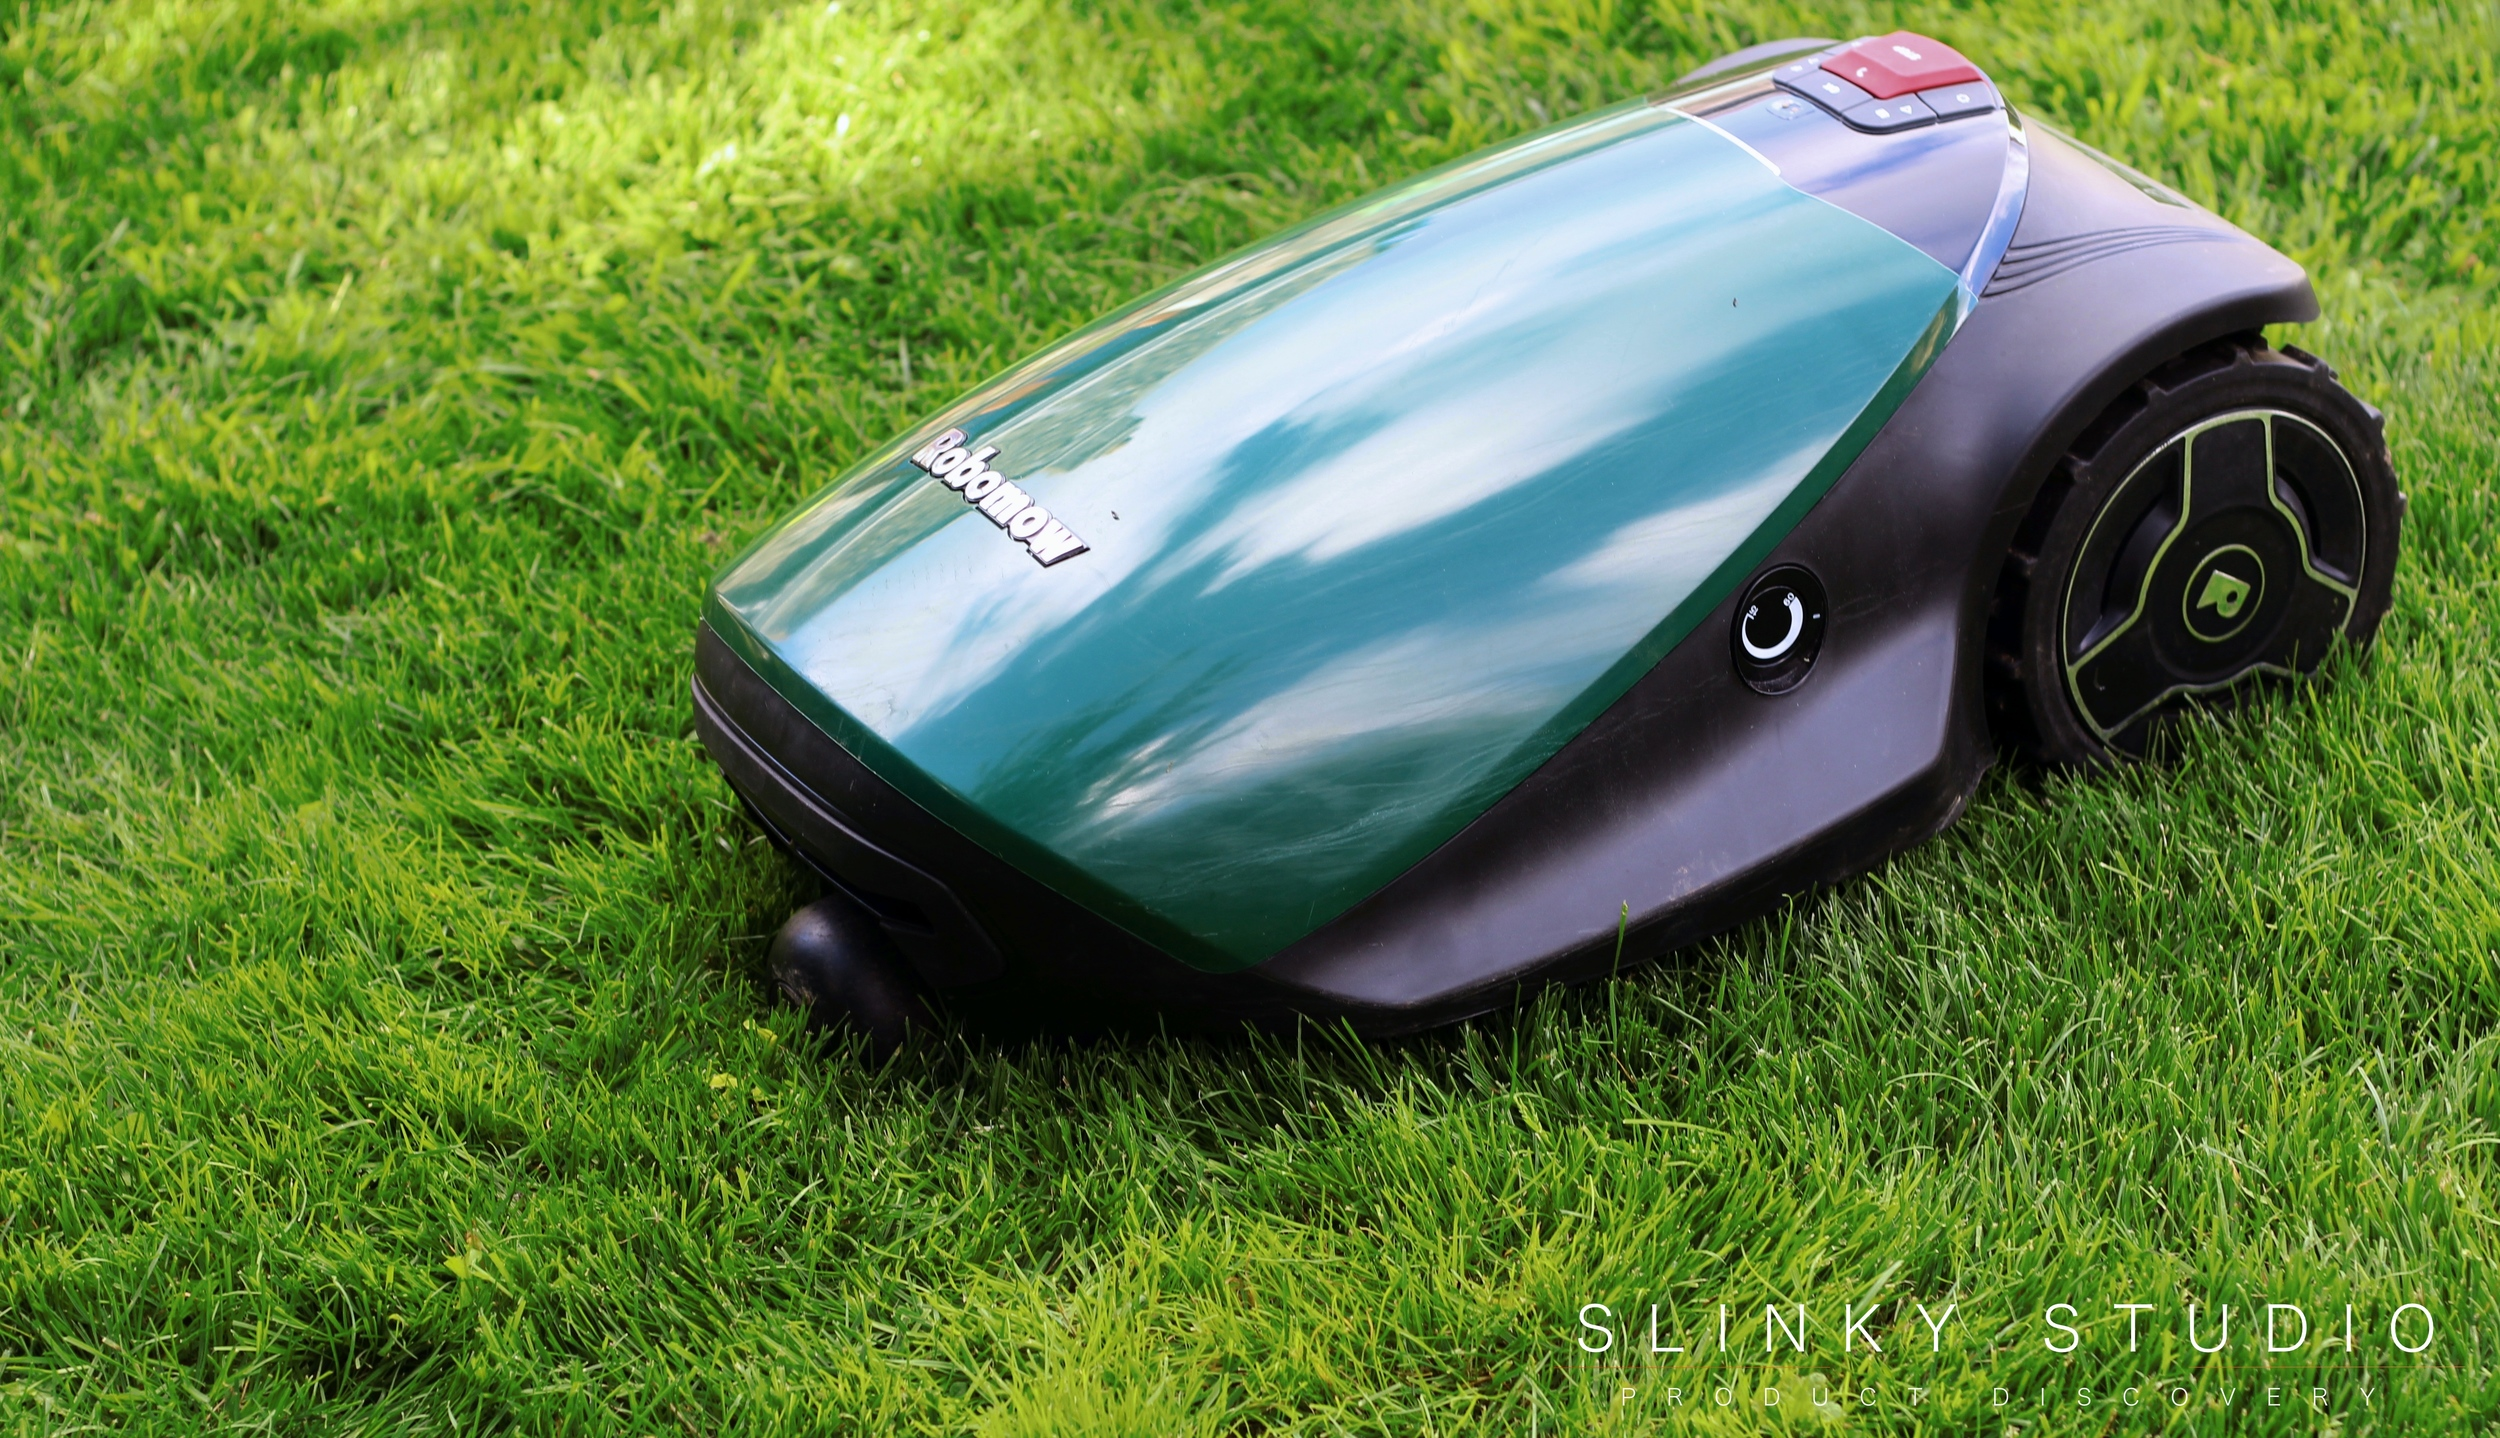 Robomow RC304 Robot Lawnmower Mowing Lawn Above View.jpg